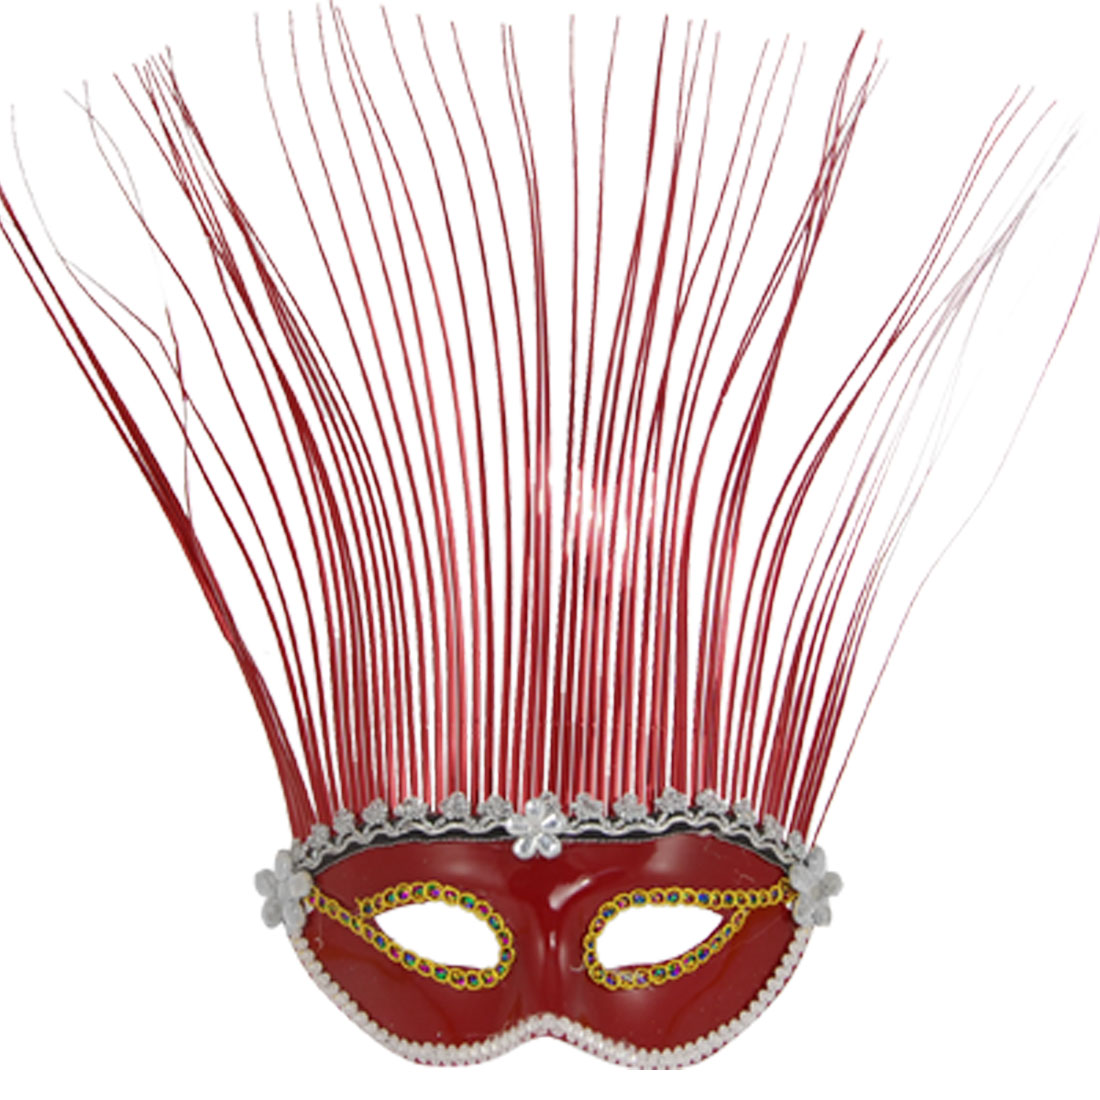 Red Metallic Hair Rhinestone Flower Plastic Masquerade Mask for Woman